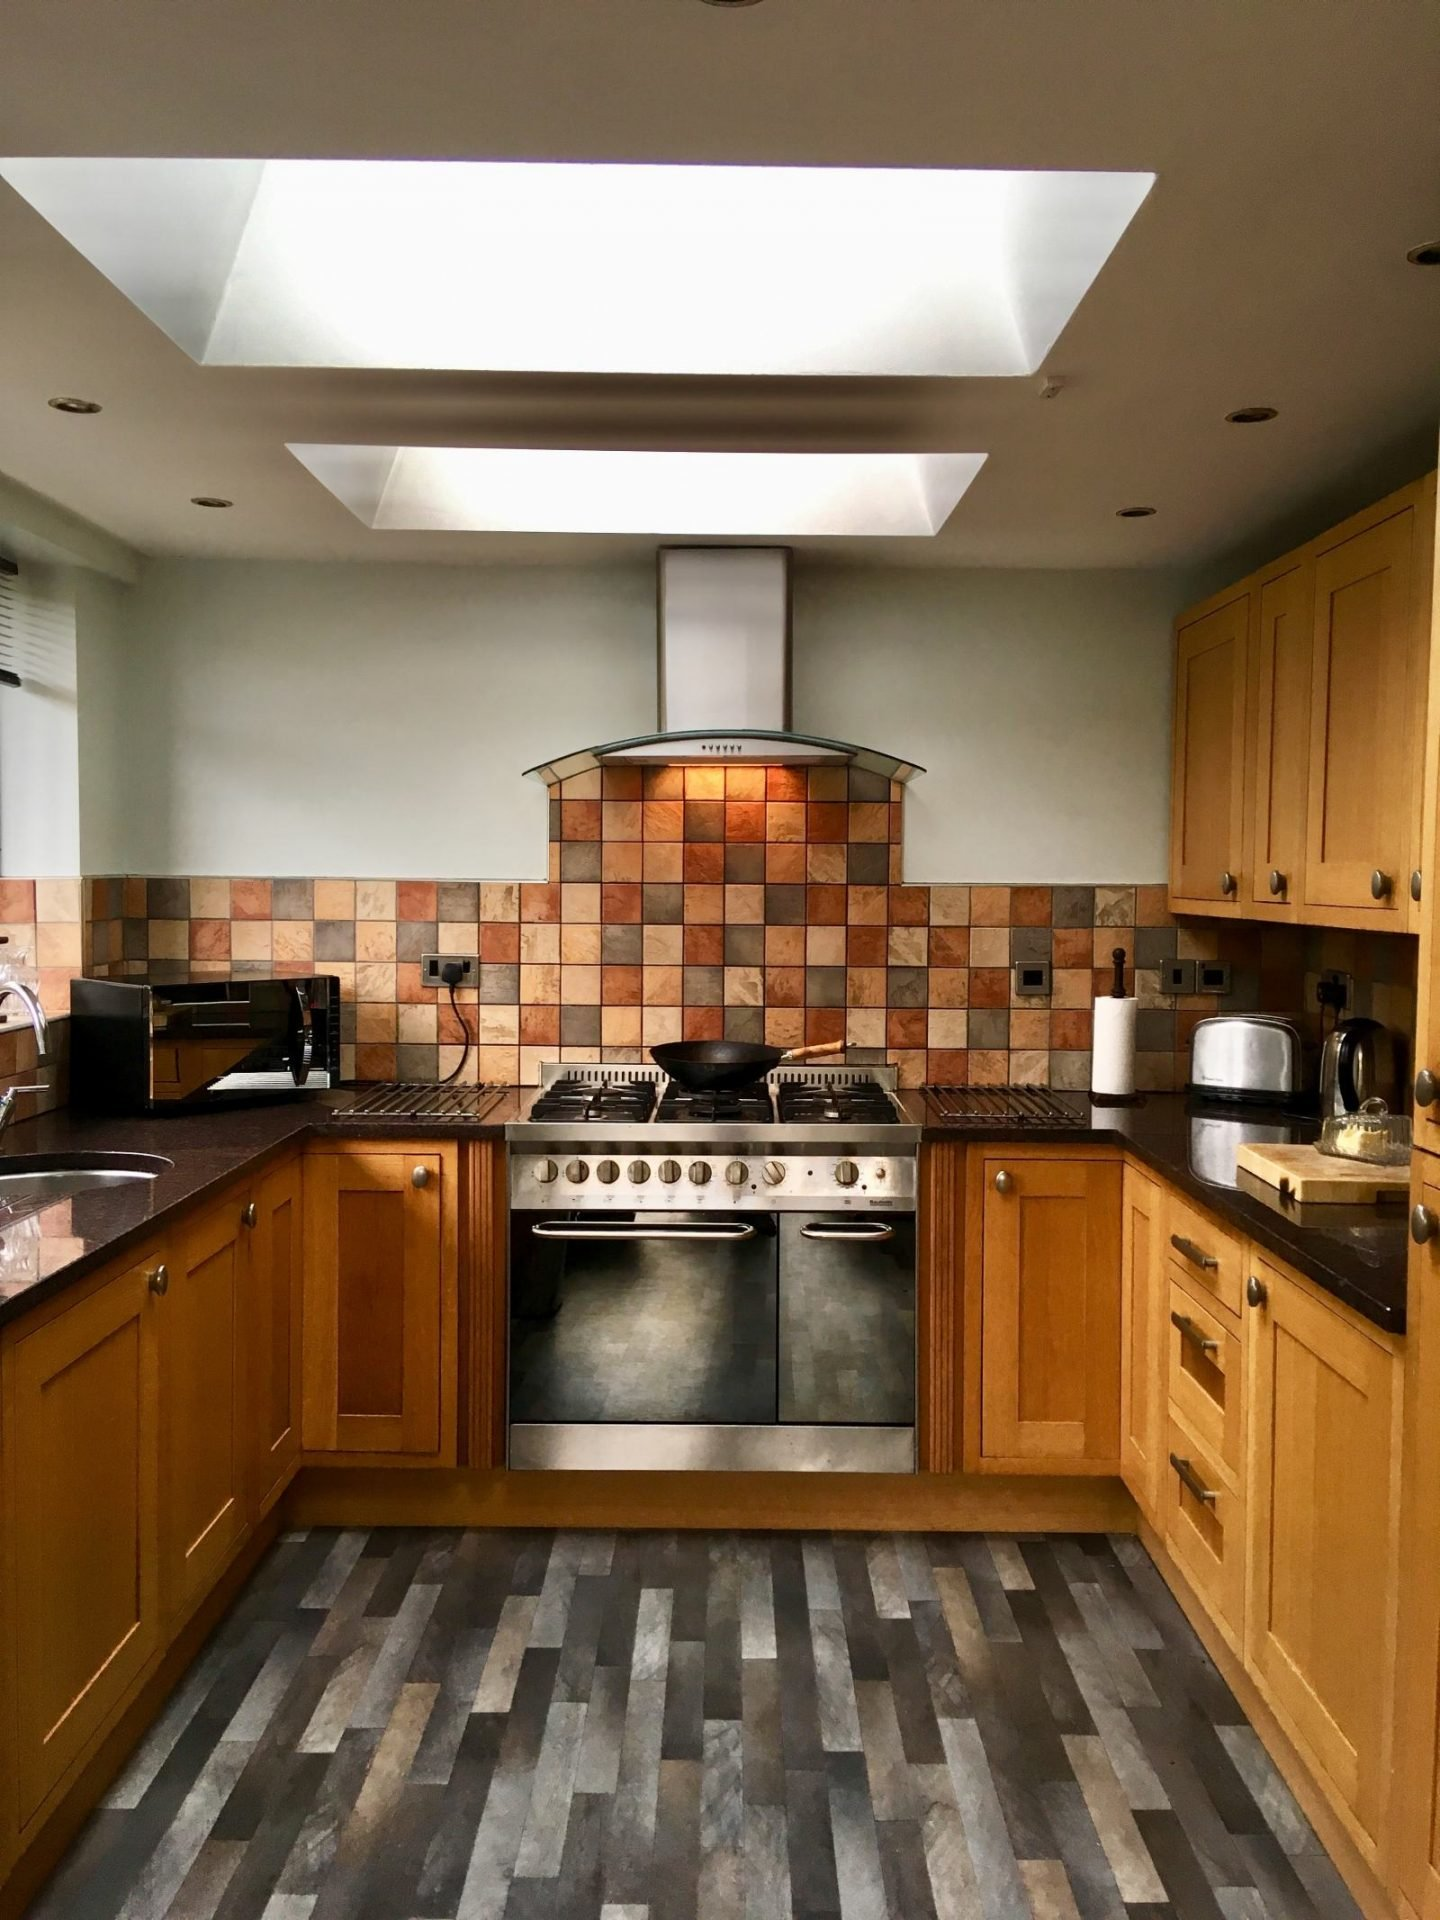 Creating light in a dark kitchen with VELUX Roof windows